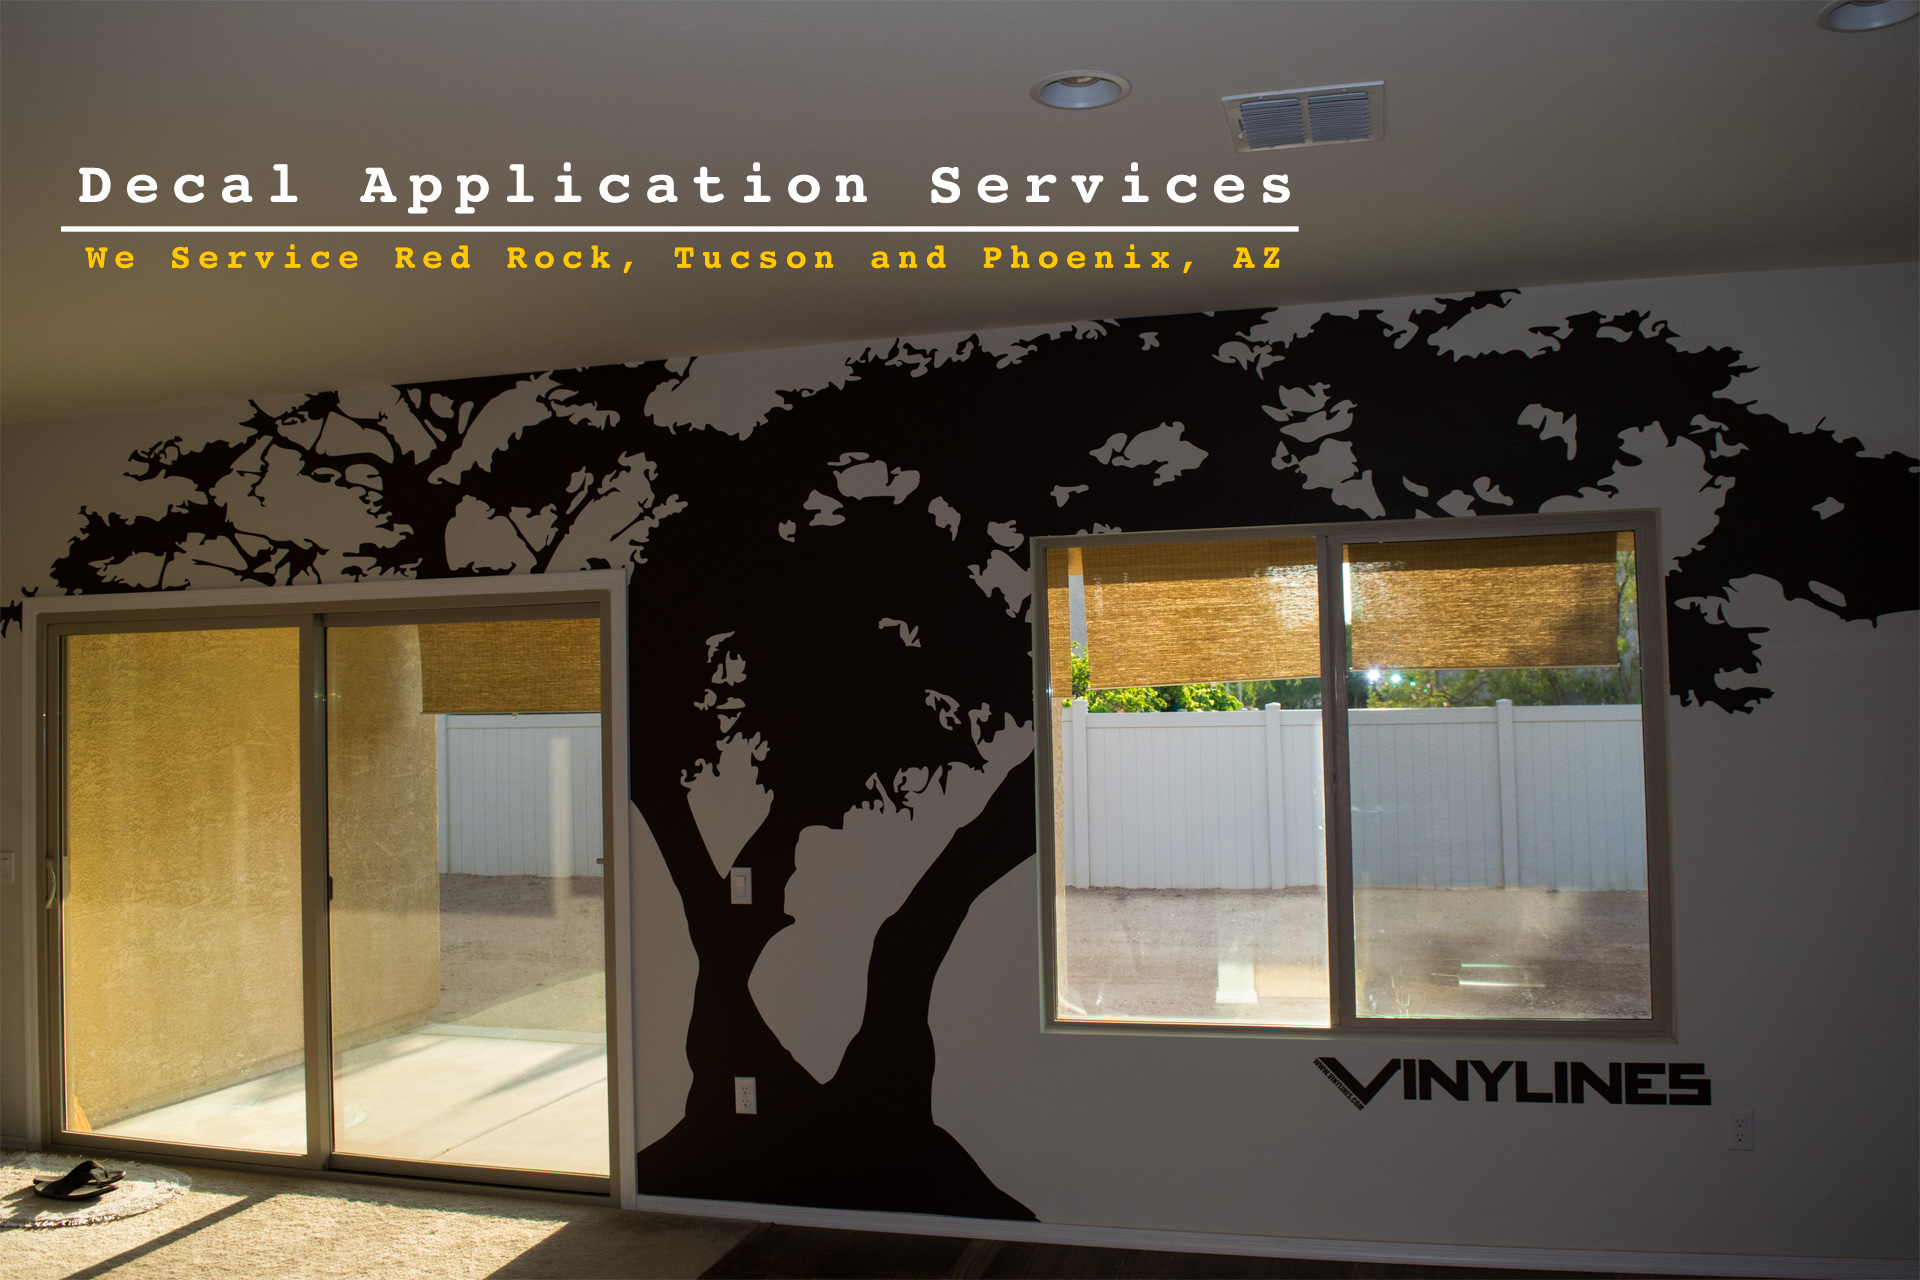 Decal Application Services